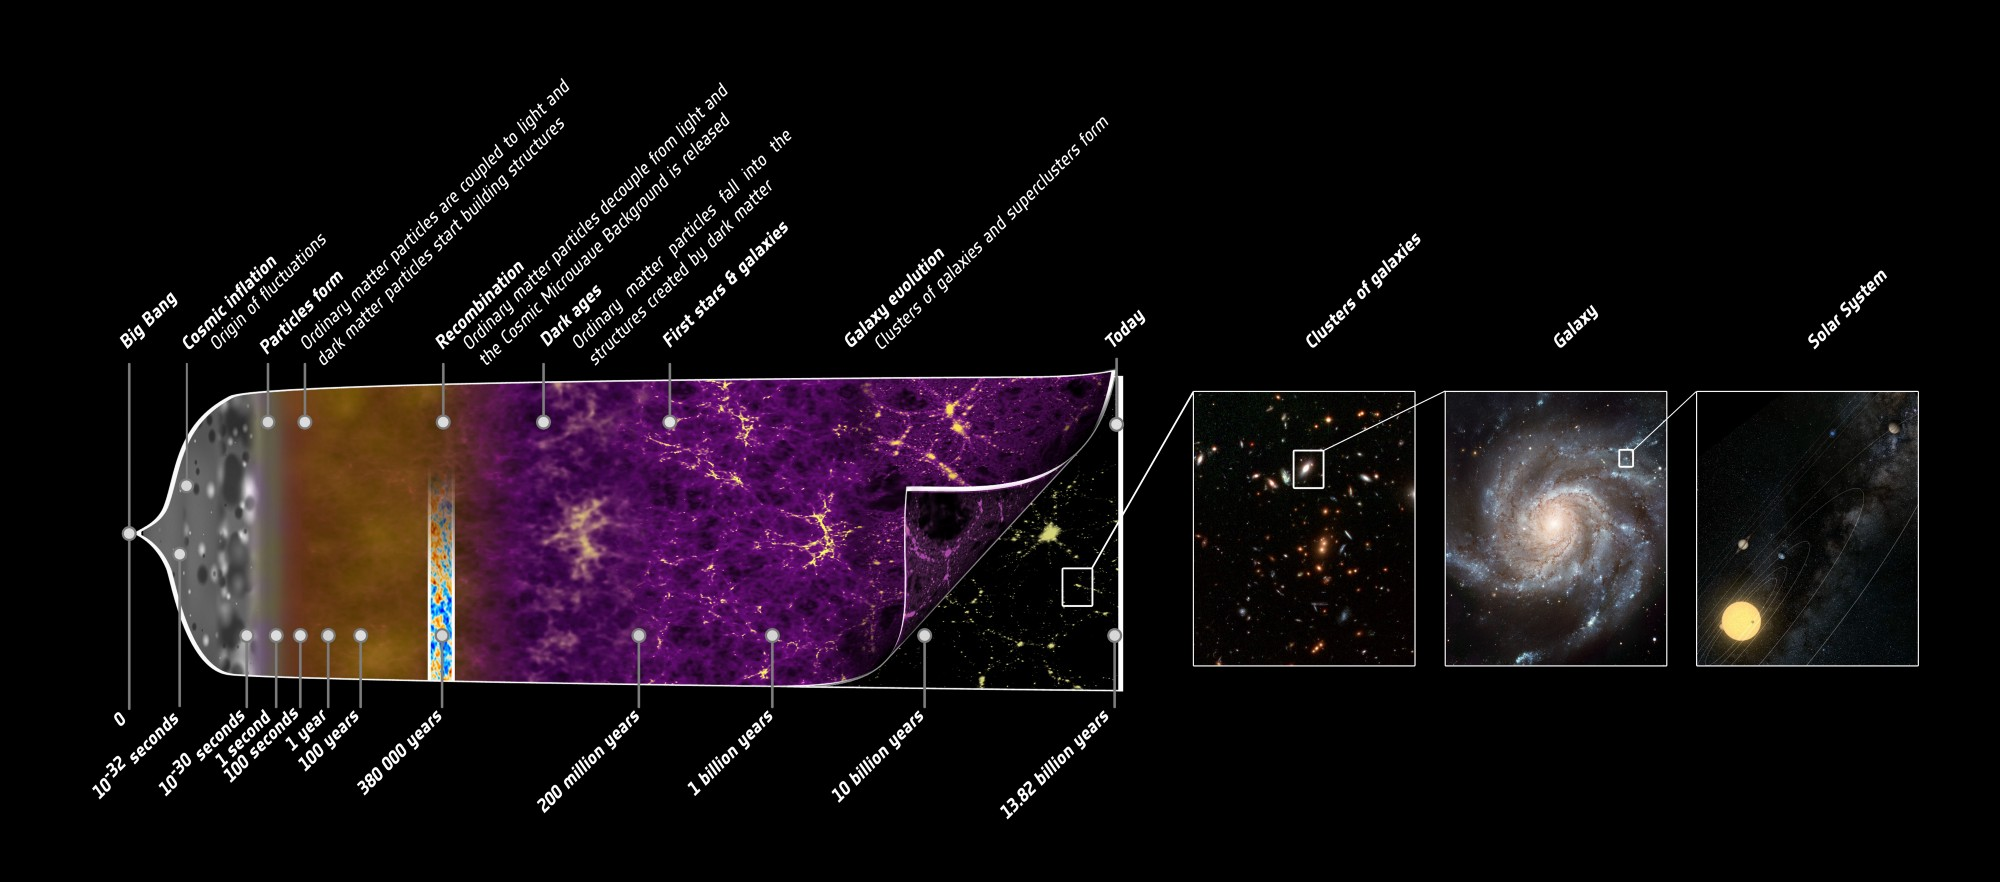 The Big Bang is not just one theory